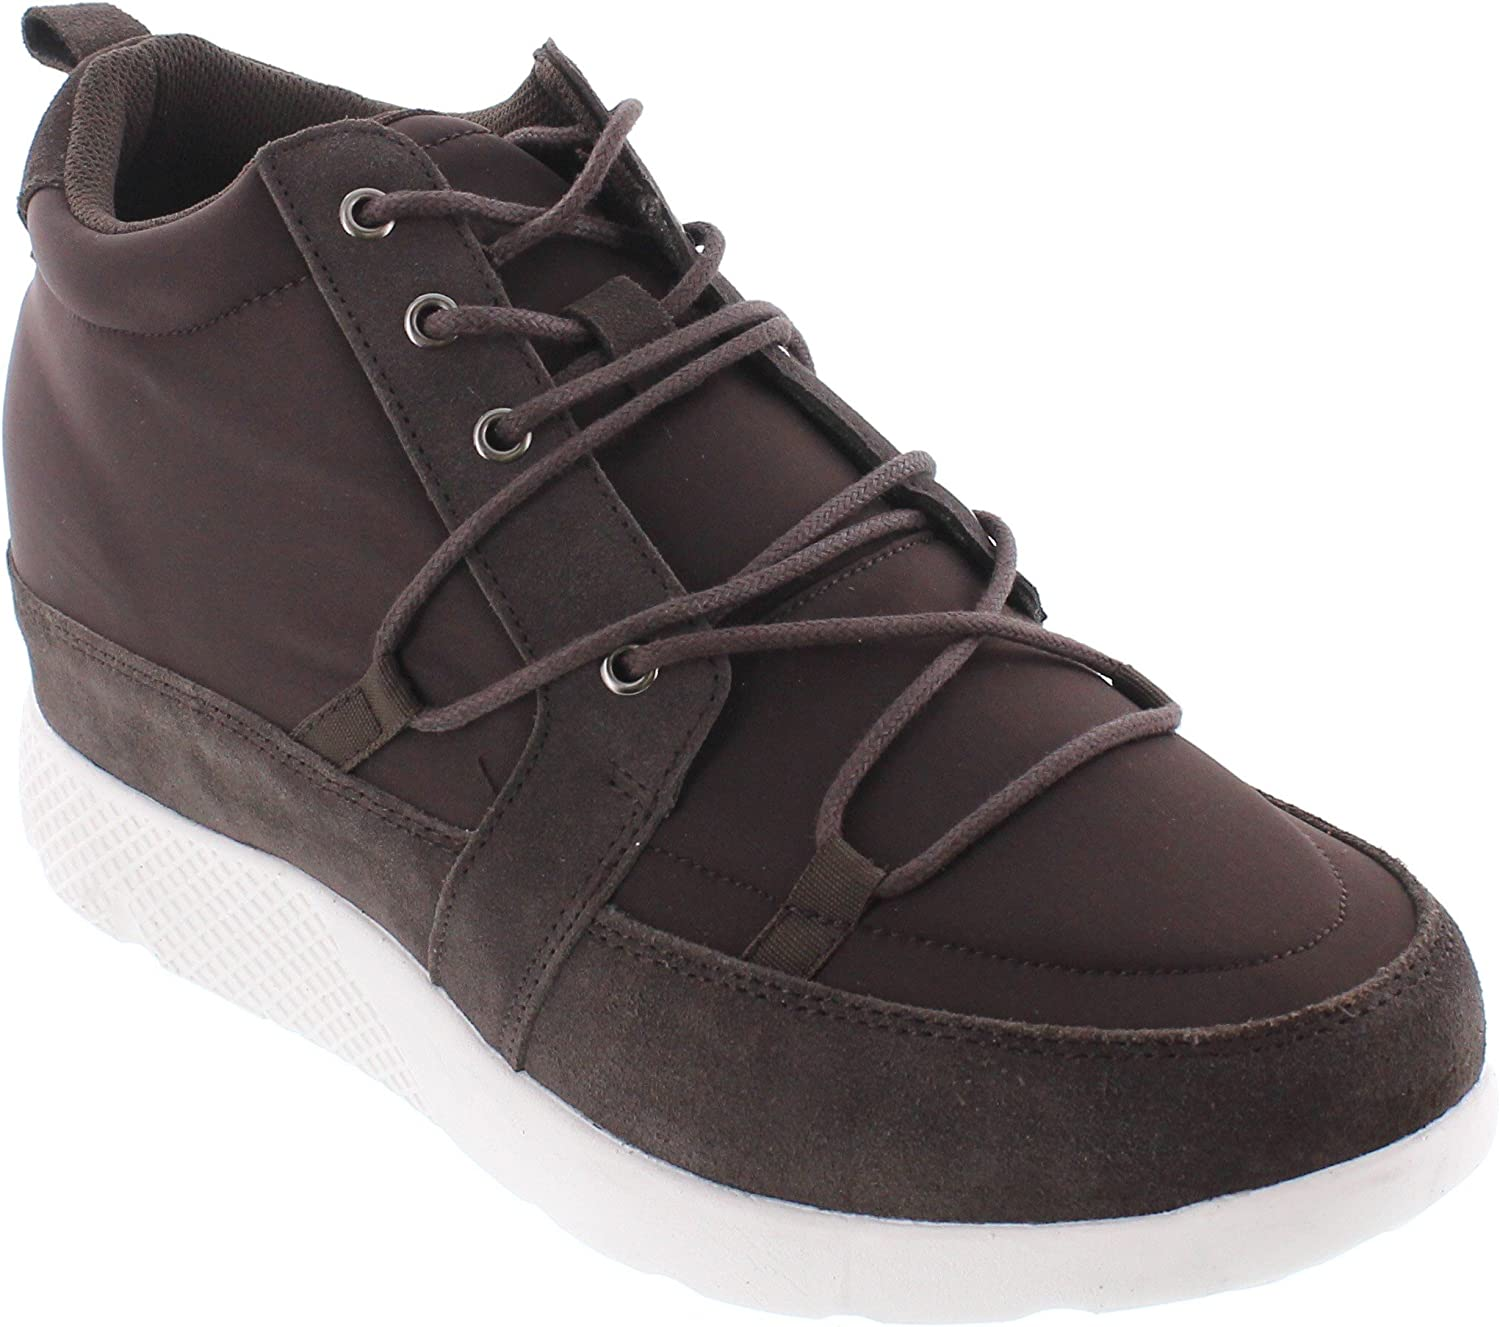 CALTO H7211-3.2 inches Taller - Height Increasing Elevator shoes - Dark Brown Fashion Sneakers